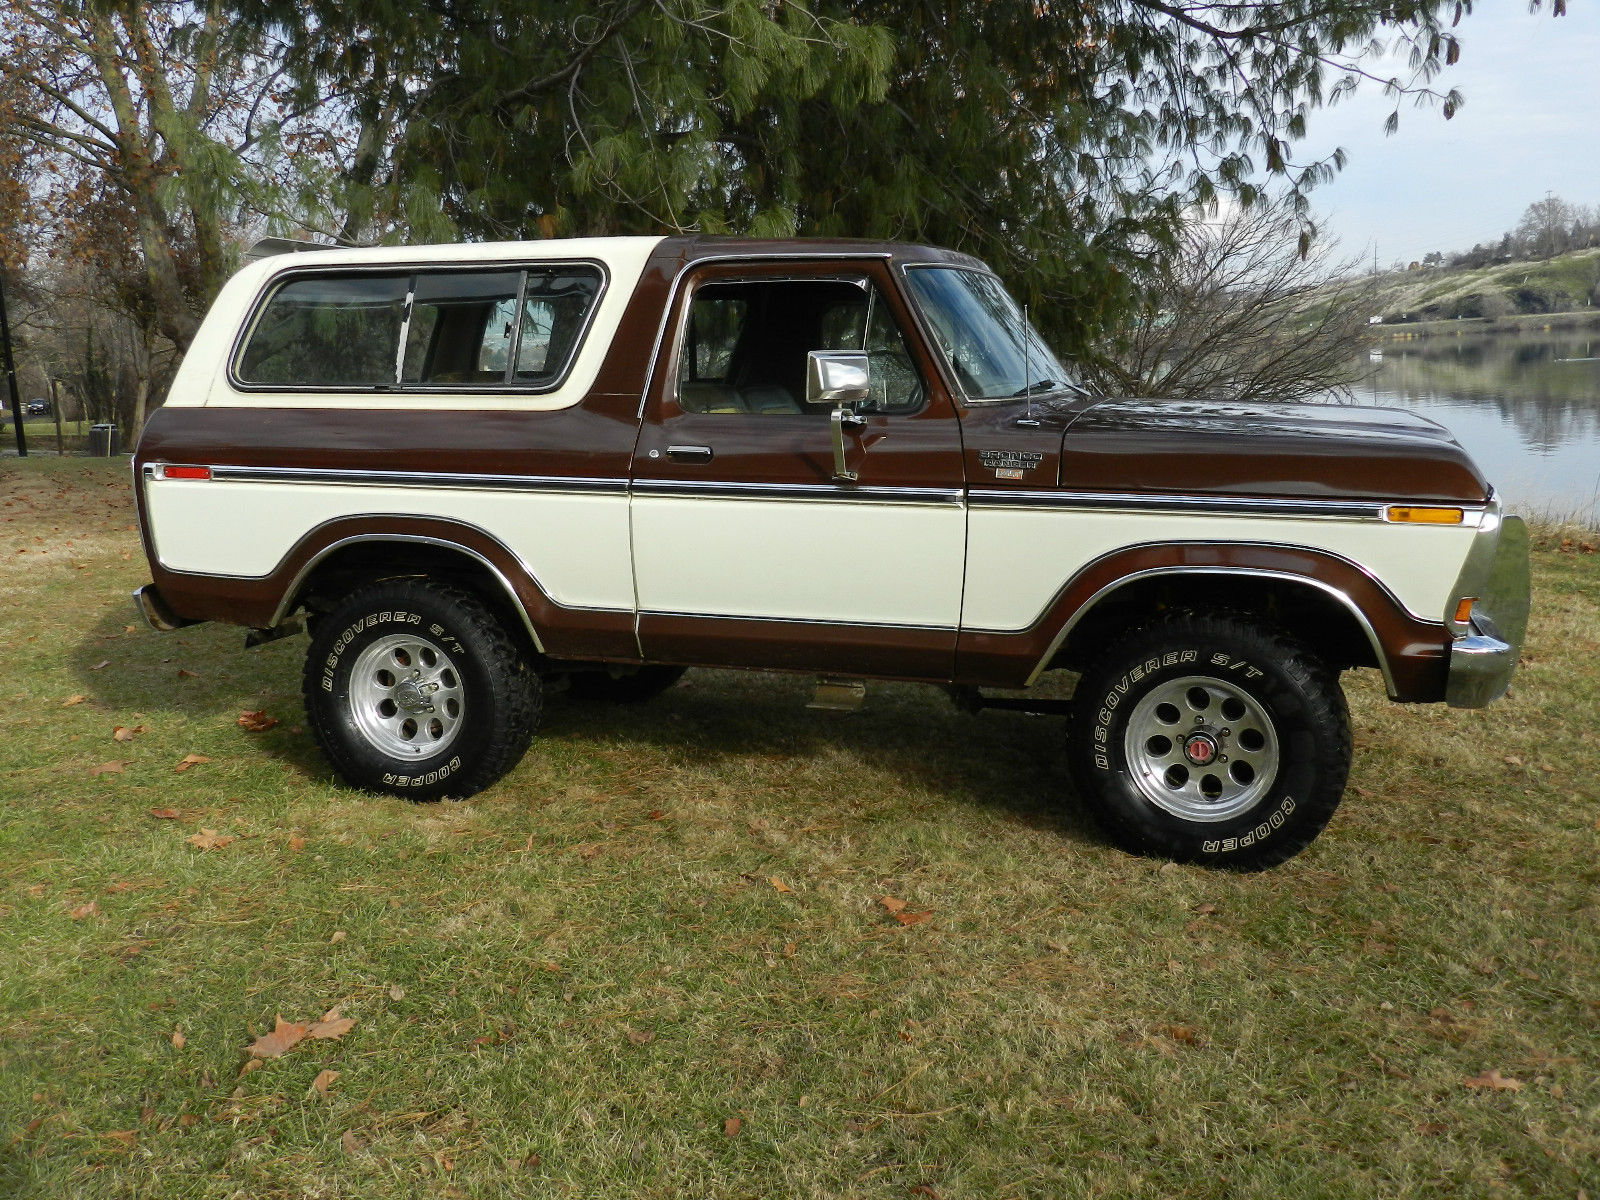 Ford F150 Wheels >> 1979 Ford Bronco F150 4x4 XLT Rare orignal paint and body ...